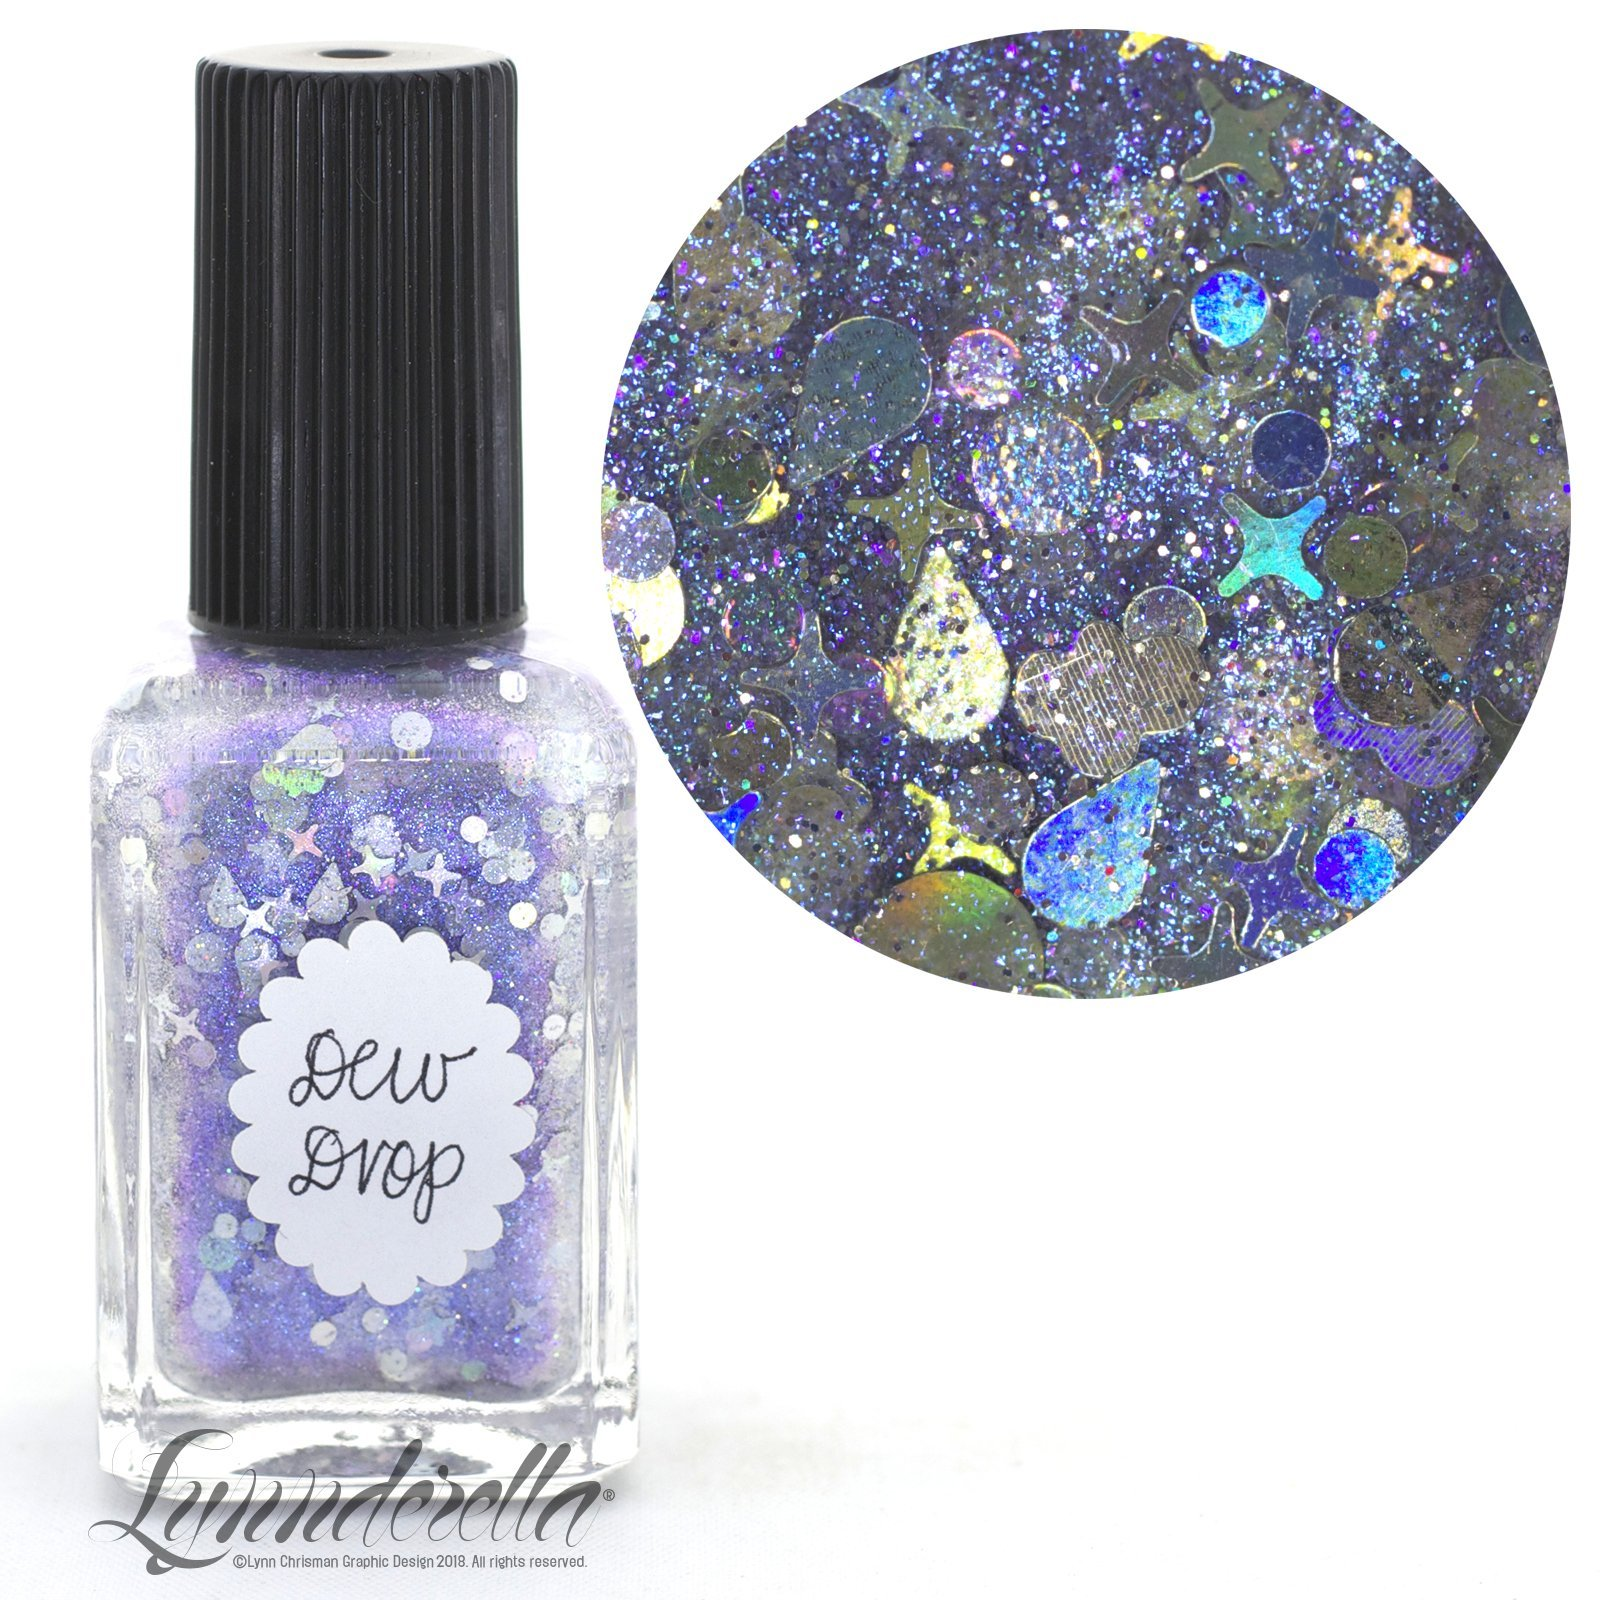 Lynnderella Limited Edition—Holographic Silver Multi Glitter Topper Nail Polish—Dew Drop